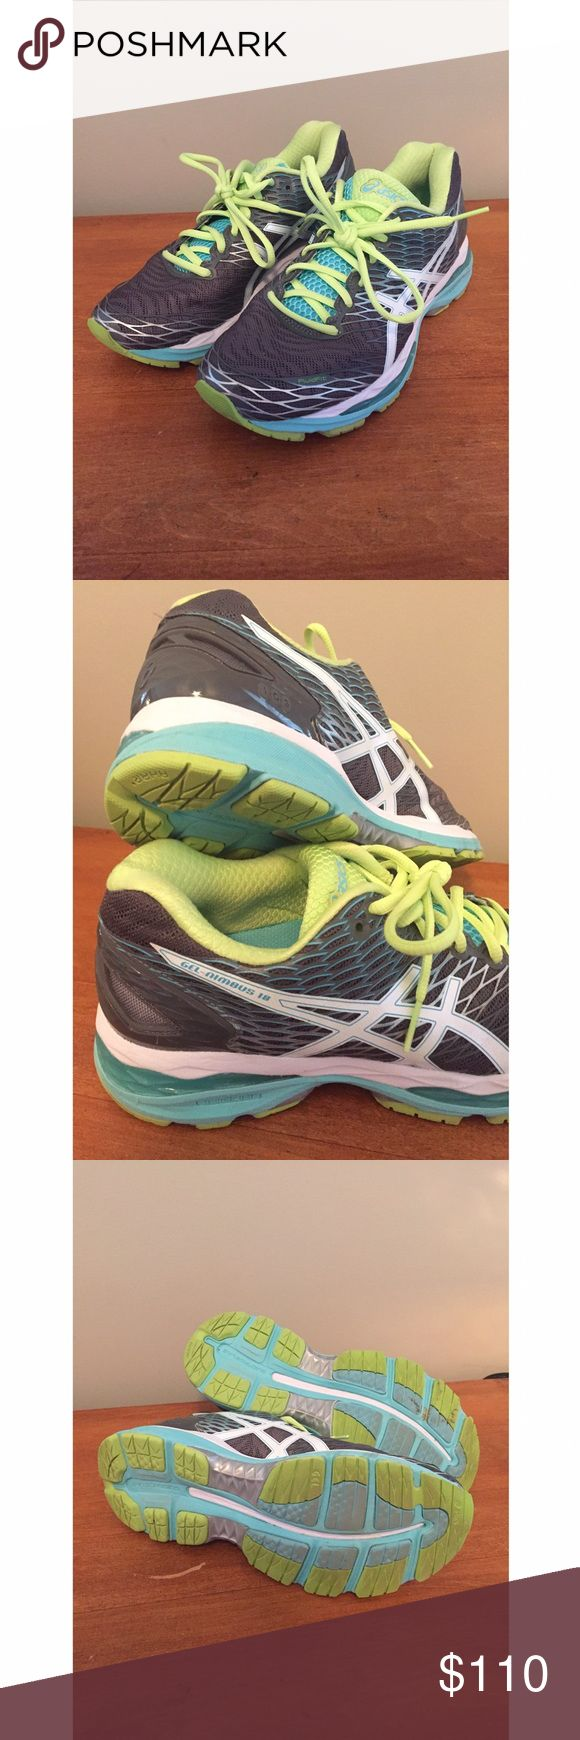 💚🎉 ASICS GEL-NIMBUS 18 Running Shoes SALE!!!! ASICS® Women's GEL-Nimbus running shoe remains a crowd favorite • Ideal for neutral runners • Worn ONCE • Top Rated!! Make an offer or bundle to save even more! Asics Shoes Athletic Shoes